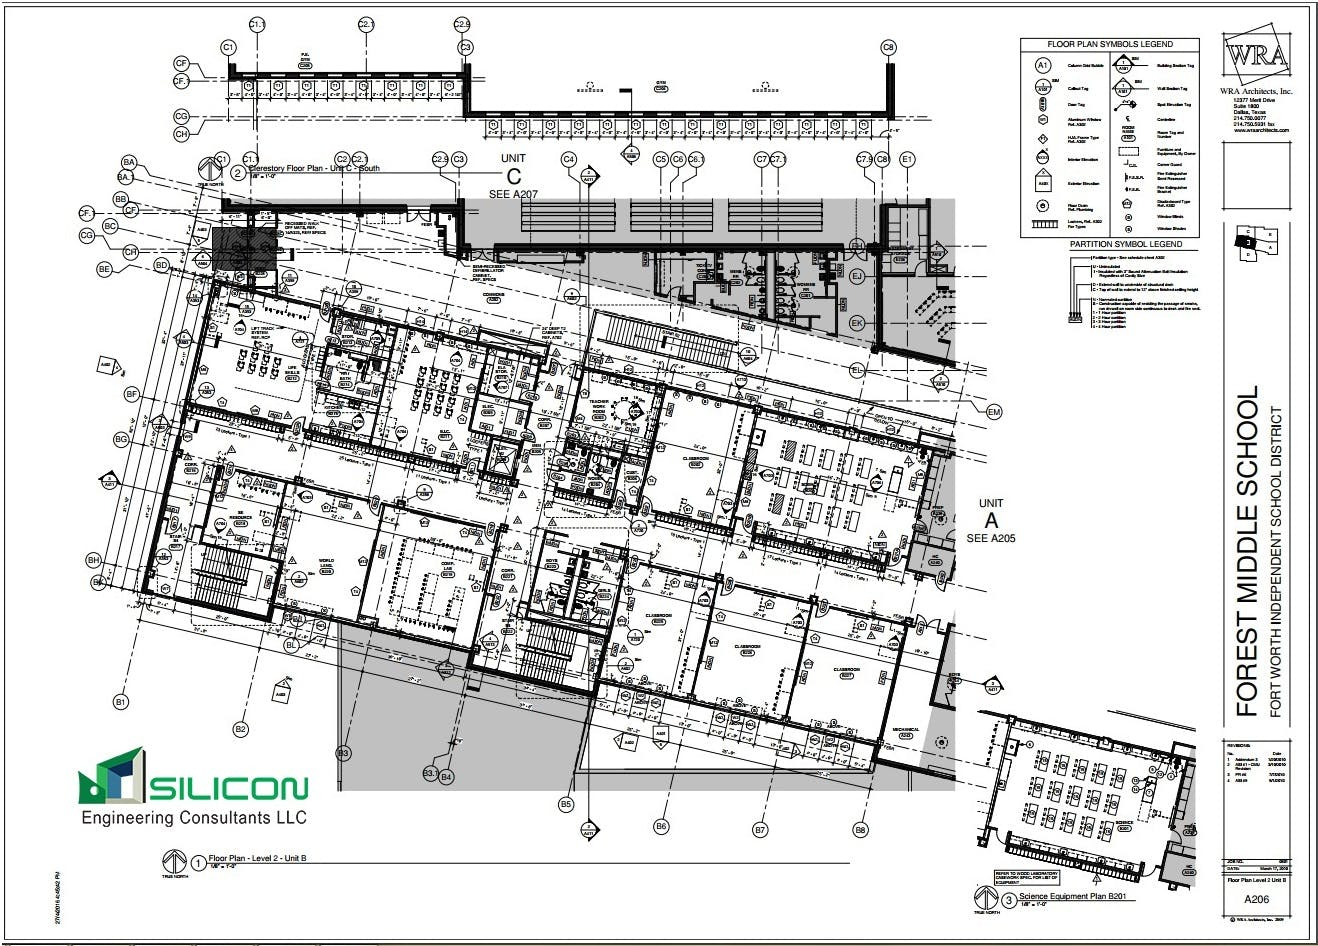 Structural Steel Detailing Services Usa Silicon Consultant Llc